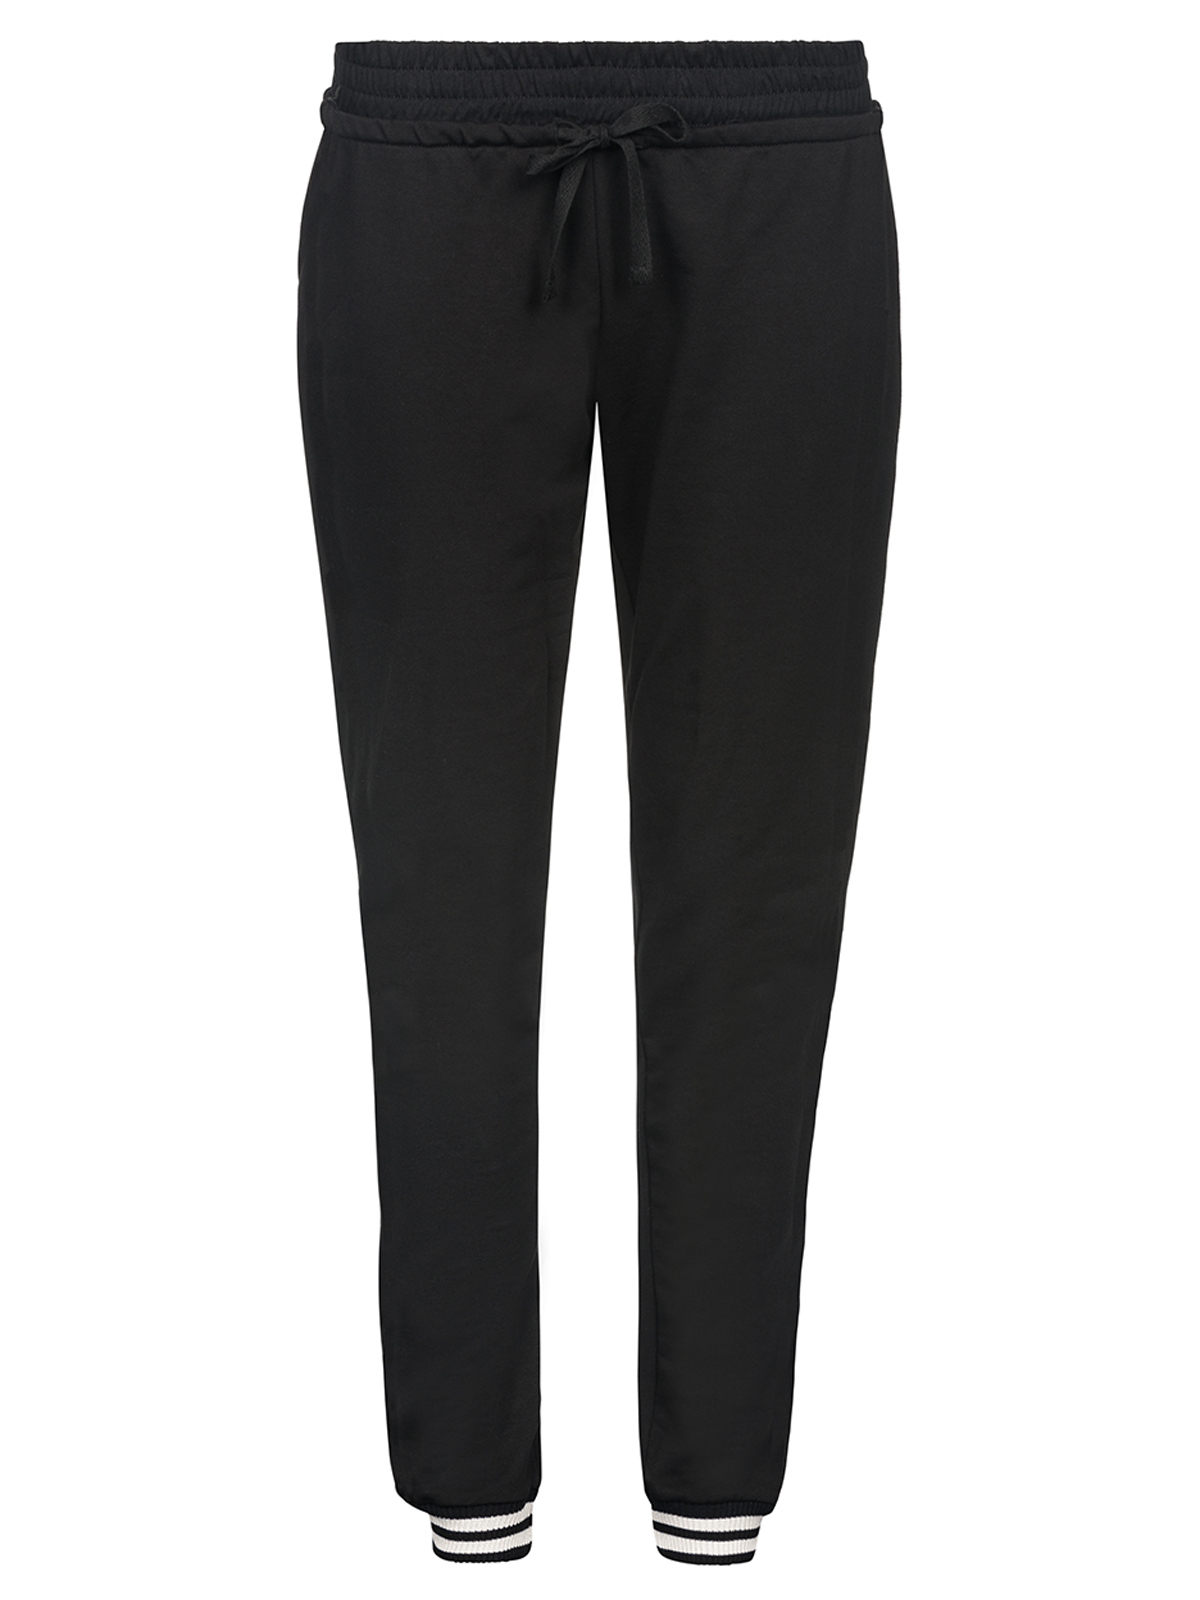 Hosen - Vive Maria Gamine Sweat Pants black – Größe XS  - Onlineshop NAPO Shop